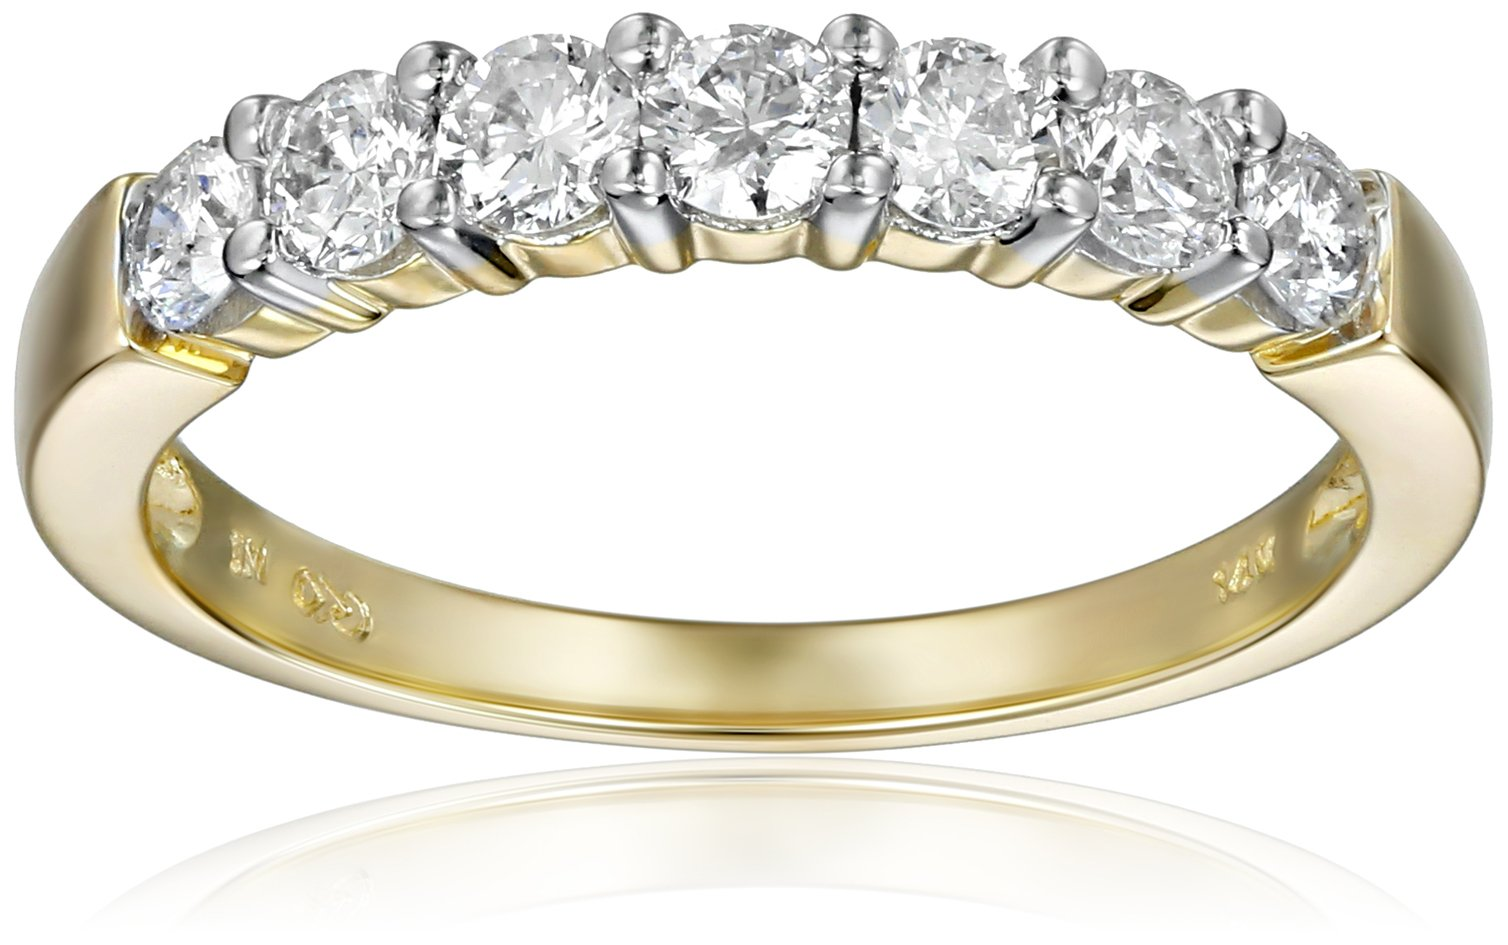 14k Yellow Gold 7-Stone Diamond Ring (3/4 cttw, H-I Color, I1-I2 Clarity), Size 7